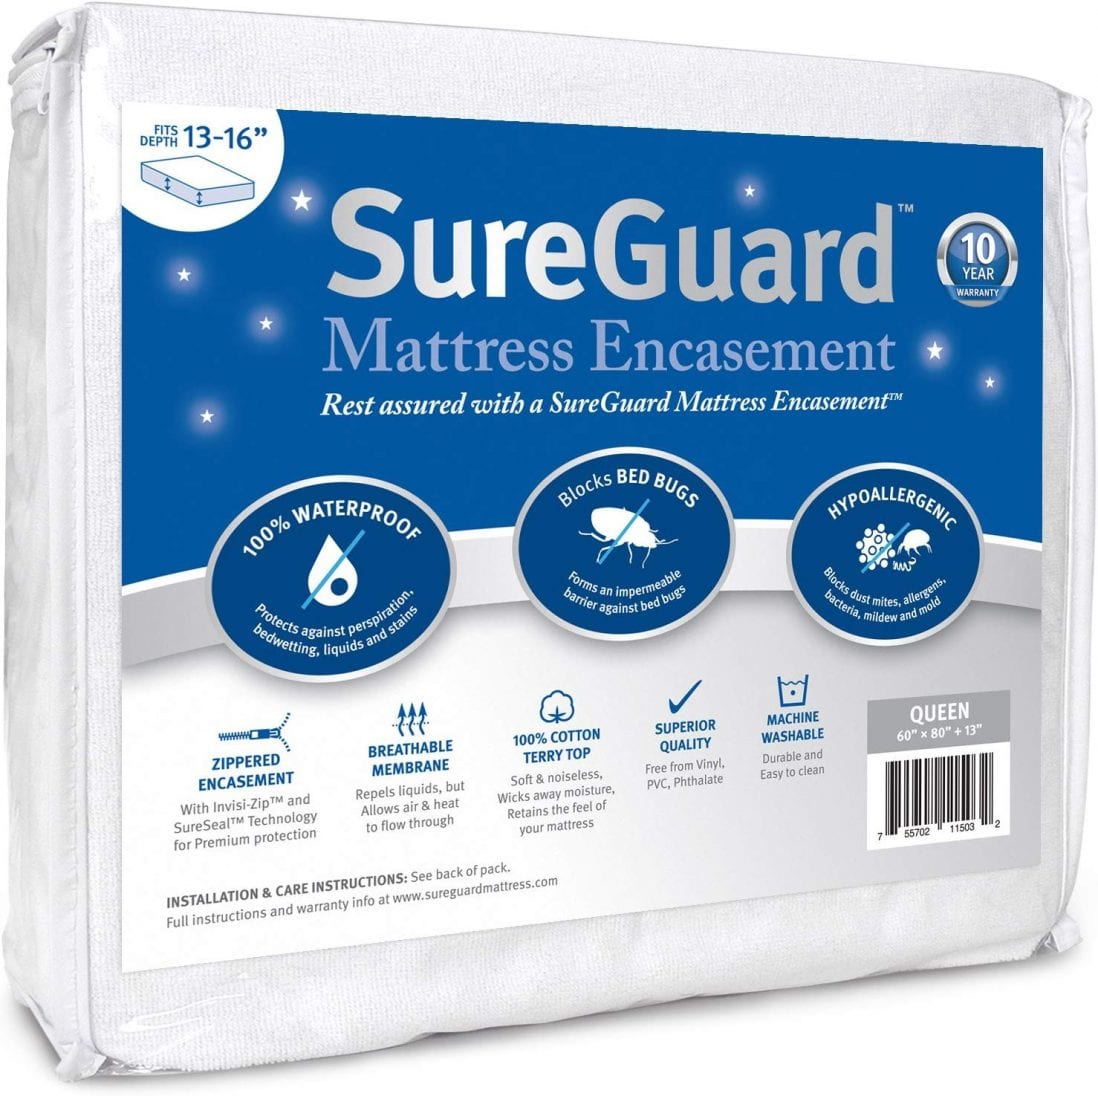 SureGuard best mattress cover review by www.dailysleep.org